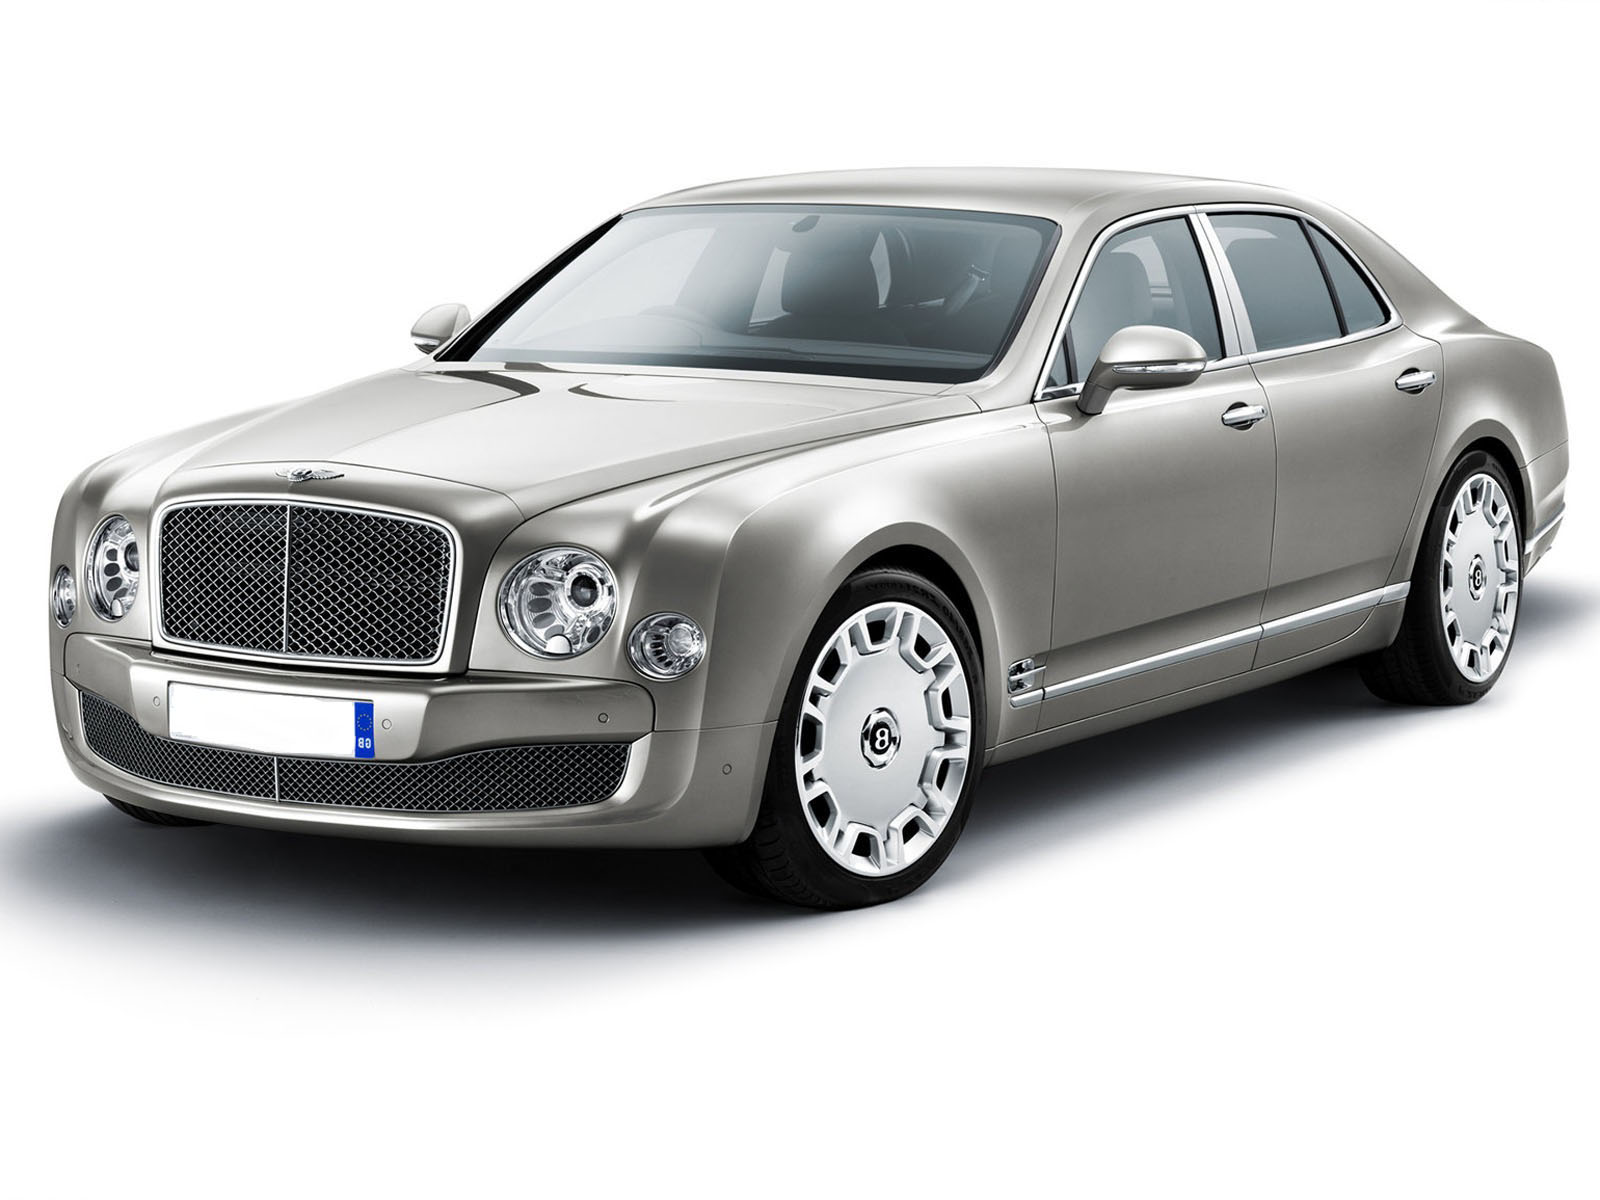 bentley motors cars automobiles Wallpapers Desktop Download